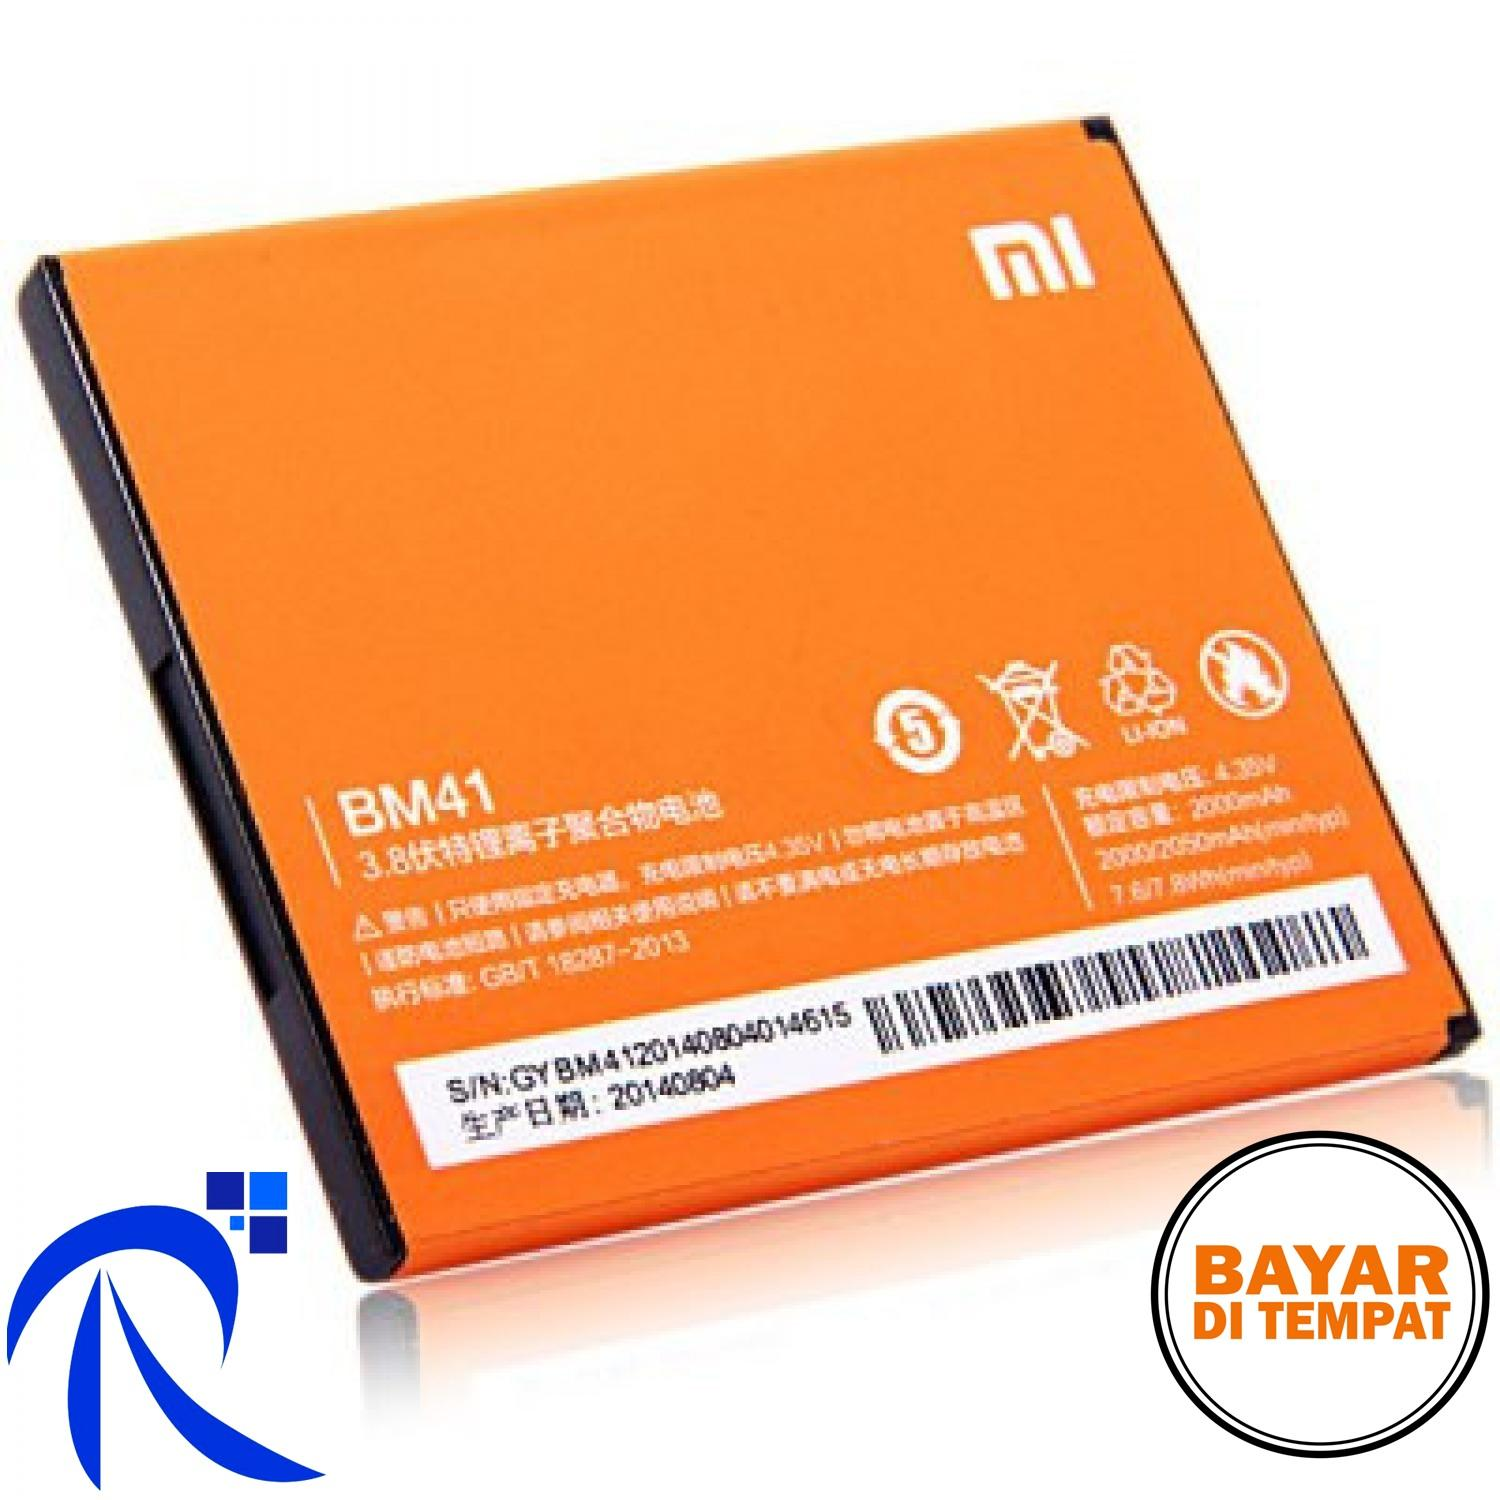 Buy Sell Cheapest Batre Batere Xiaomi Best Quality Product Deals Baterai Batrai Battery Original Redmi4a Bn30 Redmi 4a Rimas 1s 2000mah Bm41 Oem Orange Oren